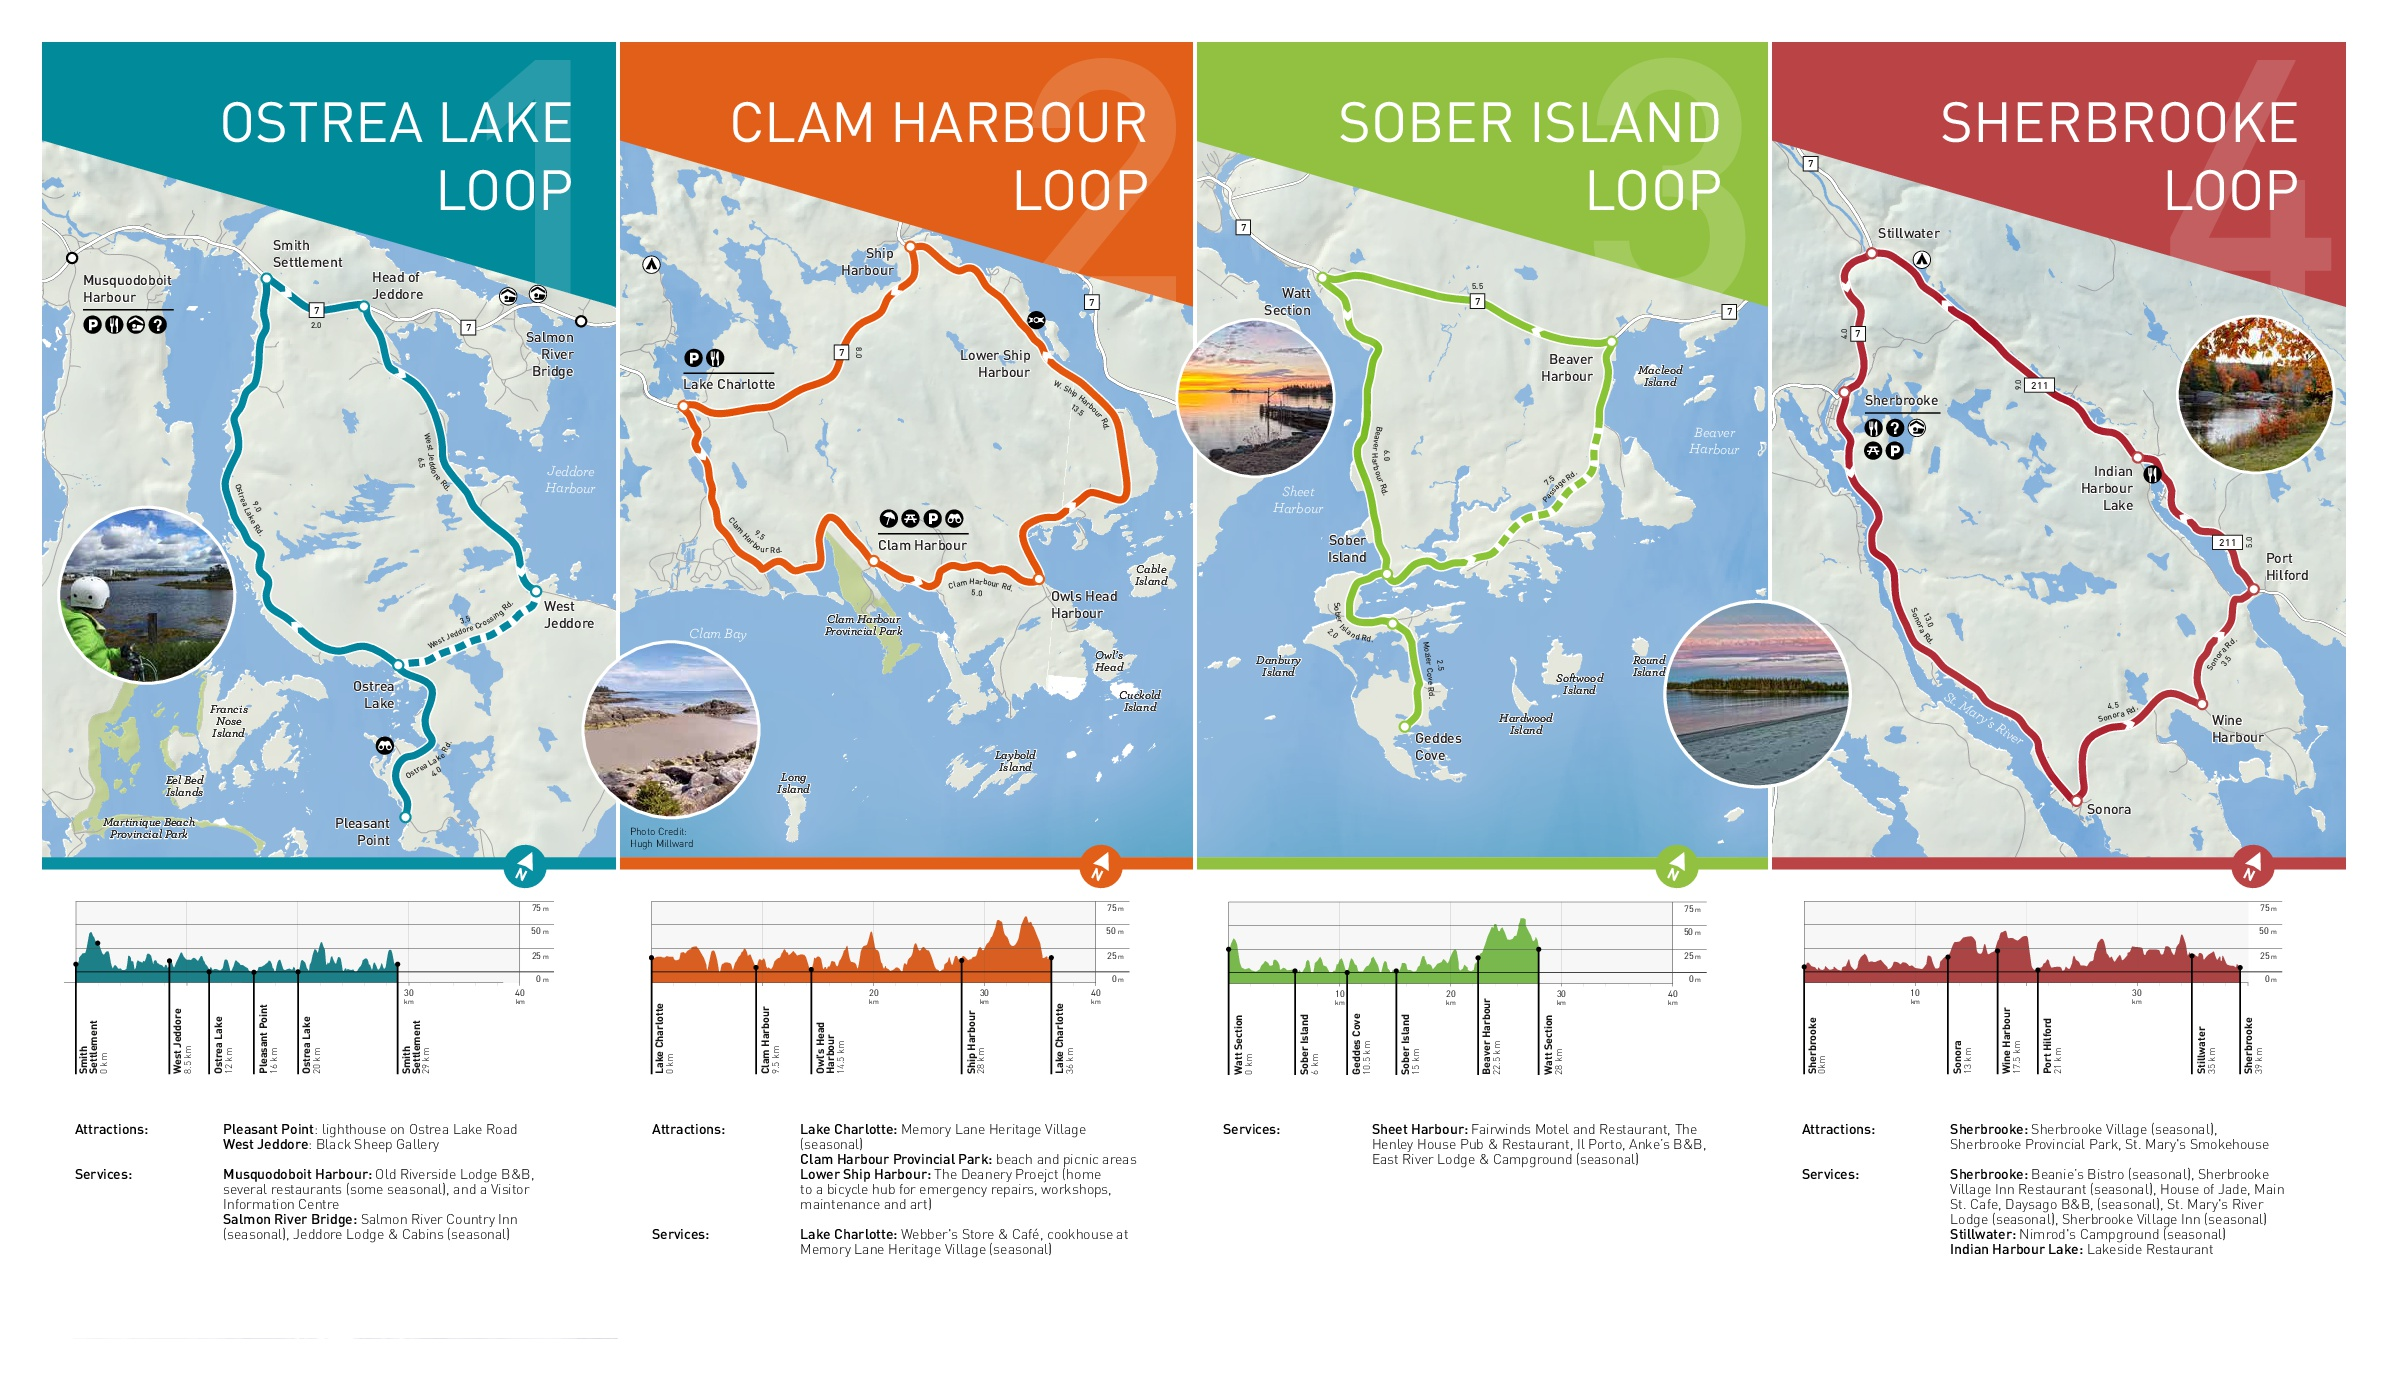 100 Wild Islands | Cycle Nova Scotia